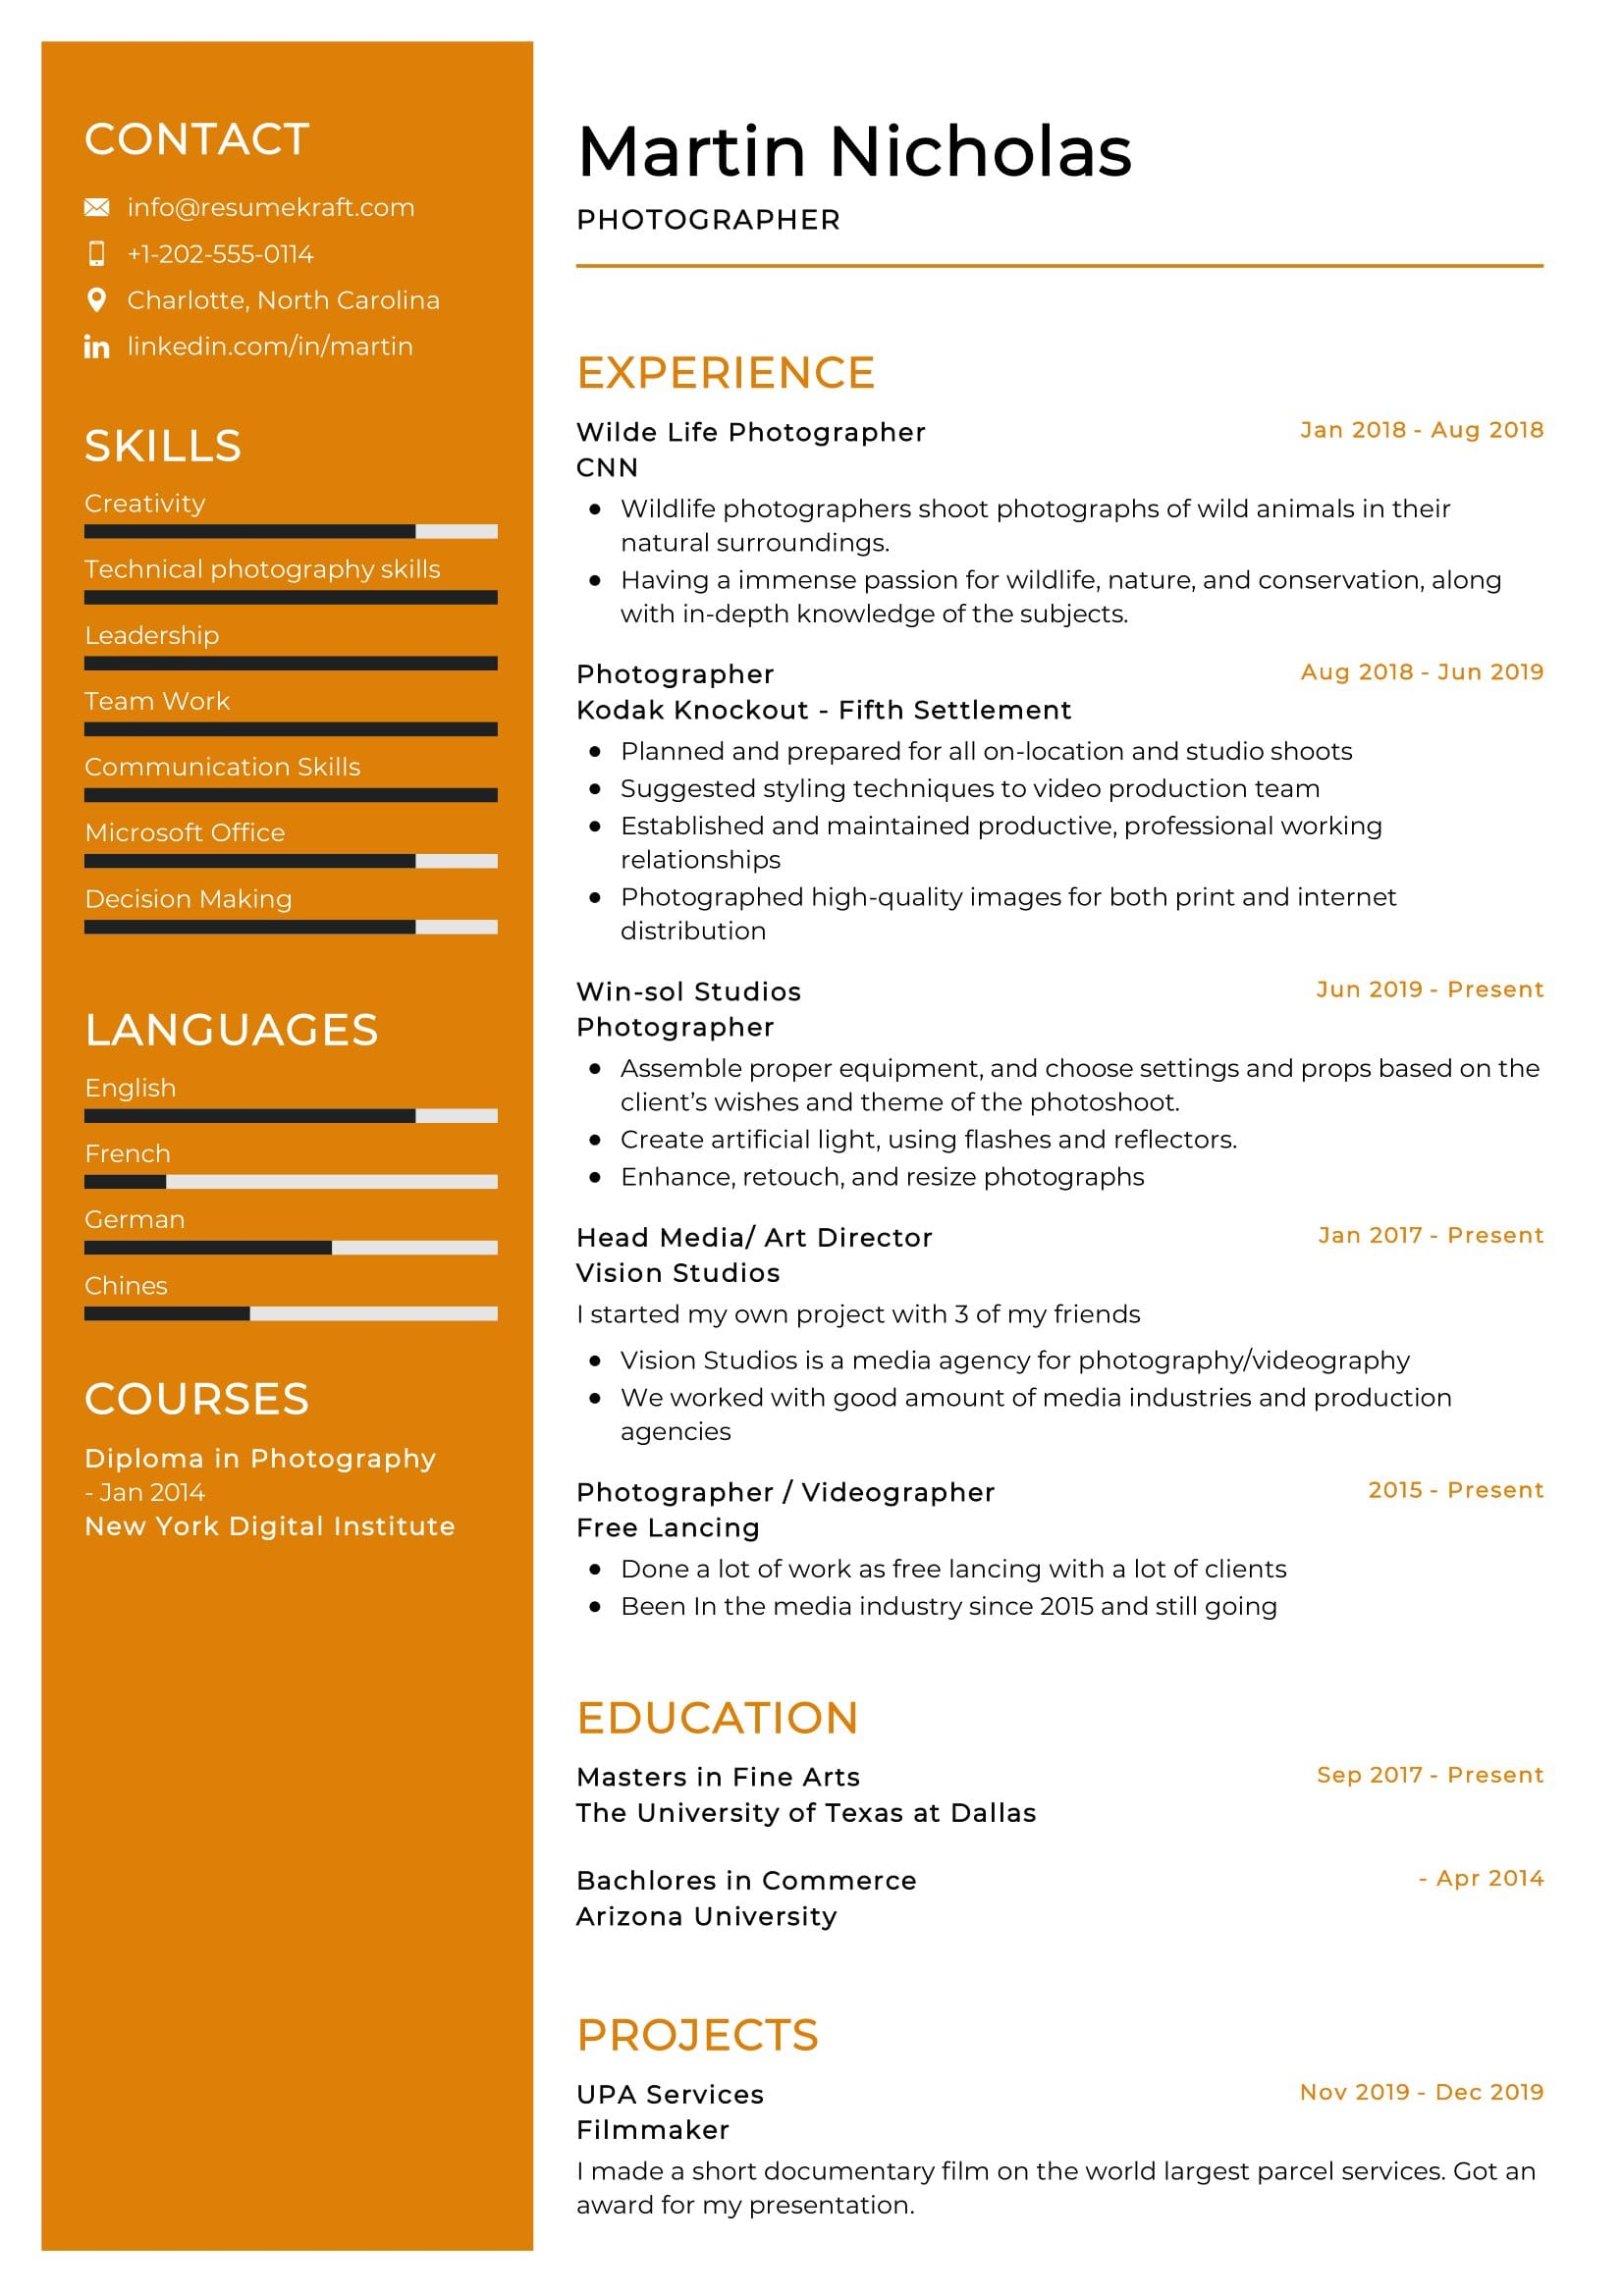 photographer resume example resumekraft photography skills for sample uci template Resume Photography Skills For Resume